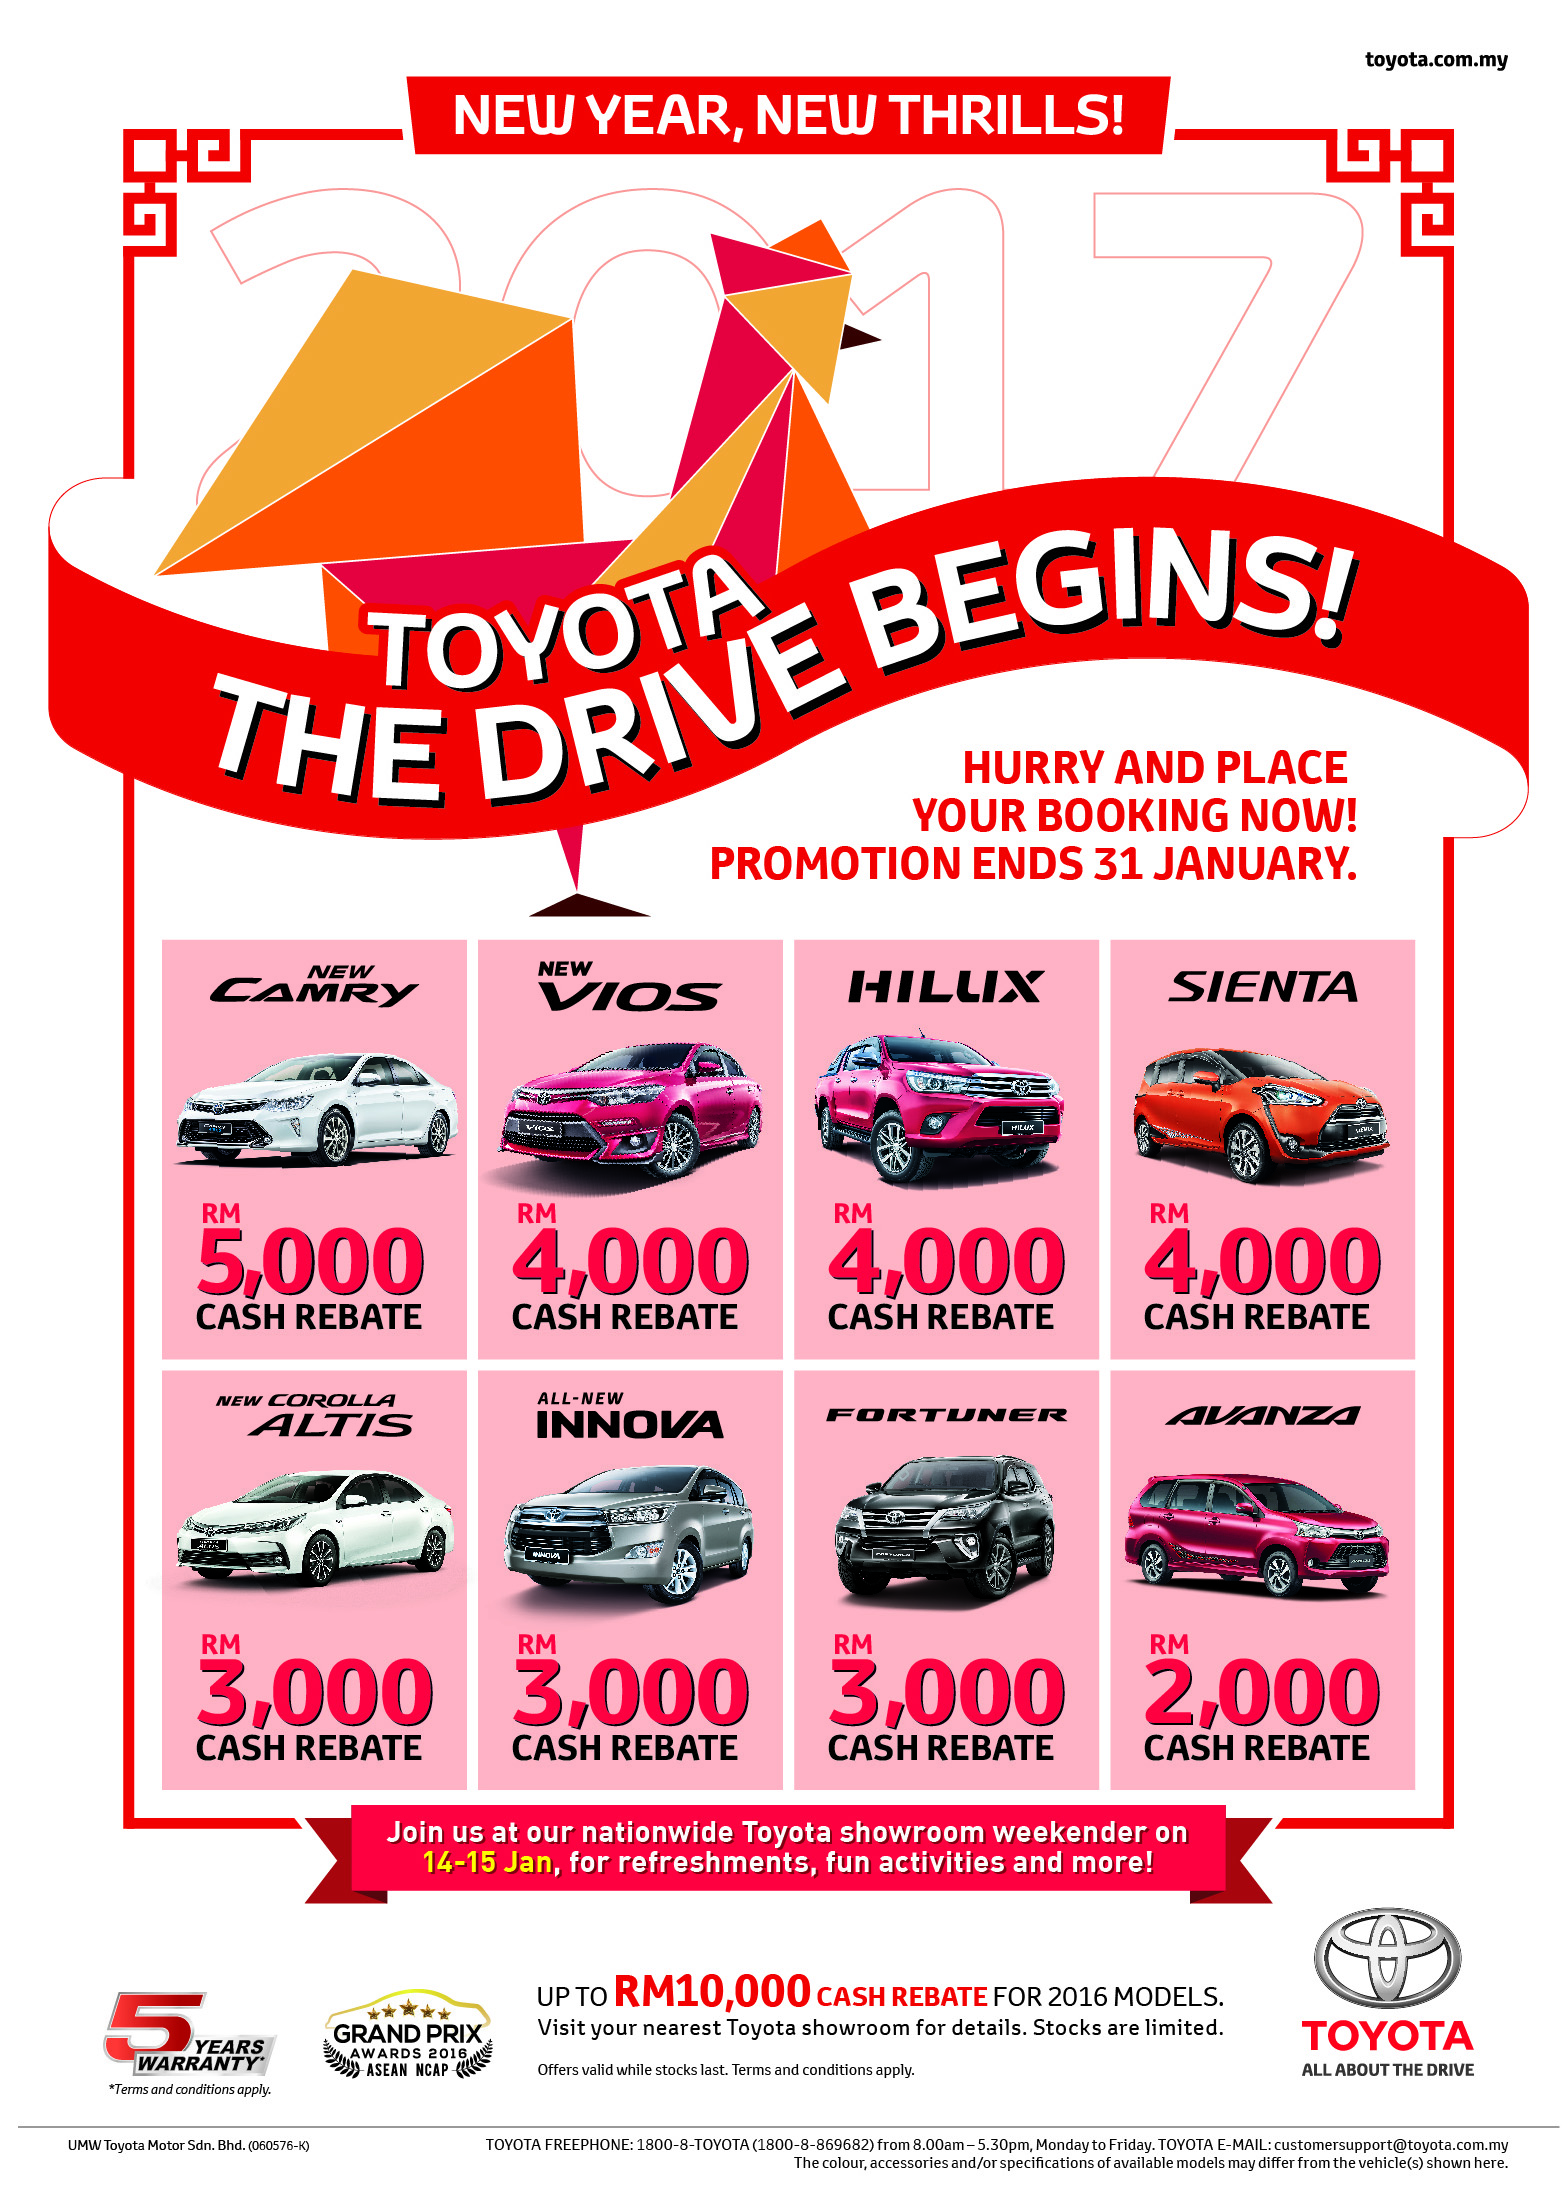 rebates galore for toyota cny promotion